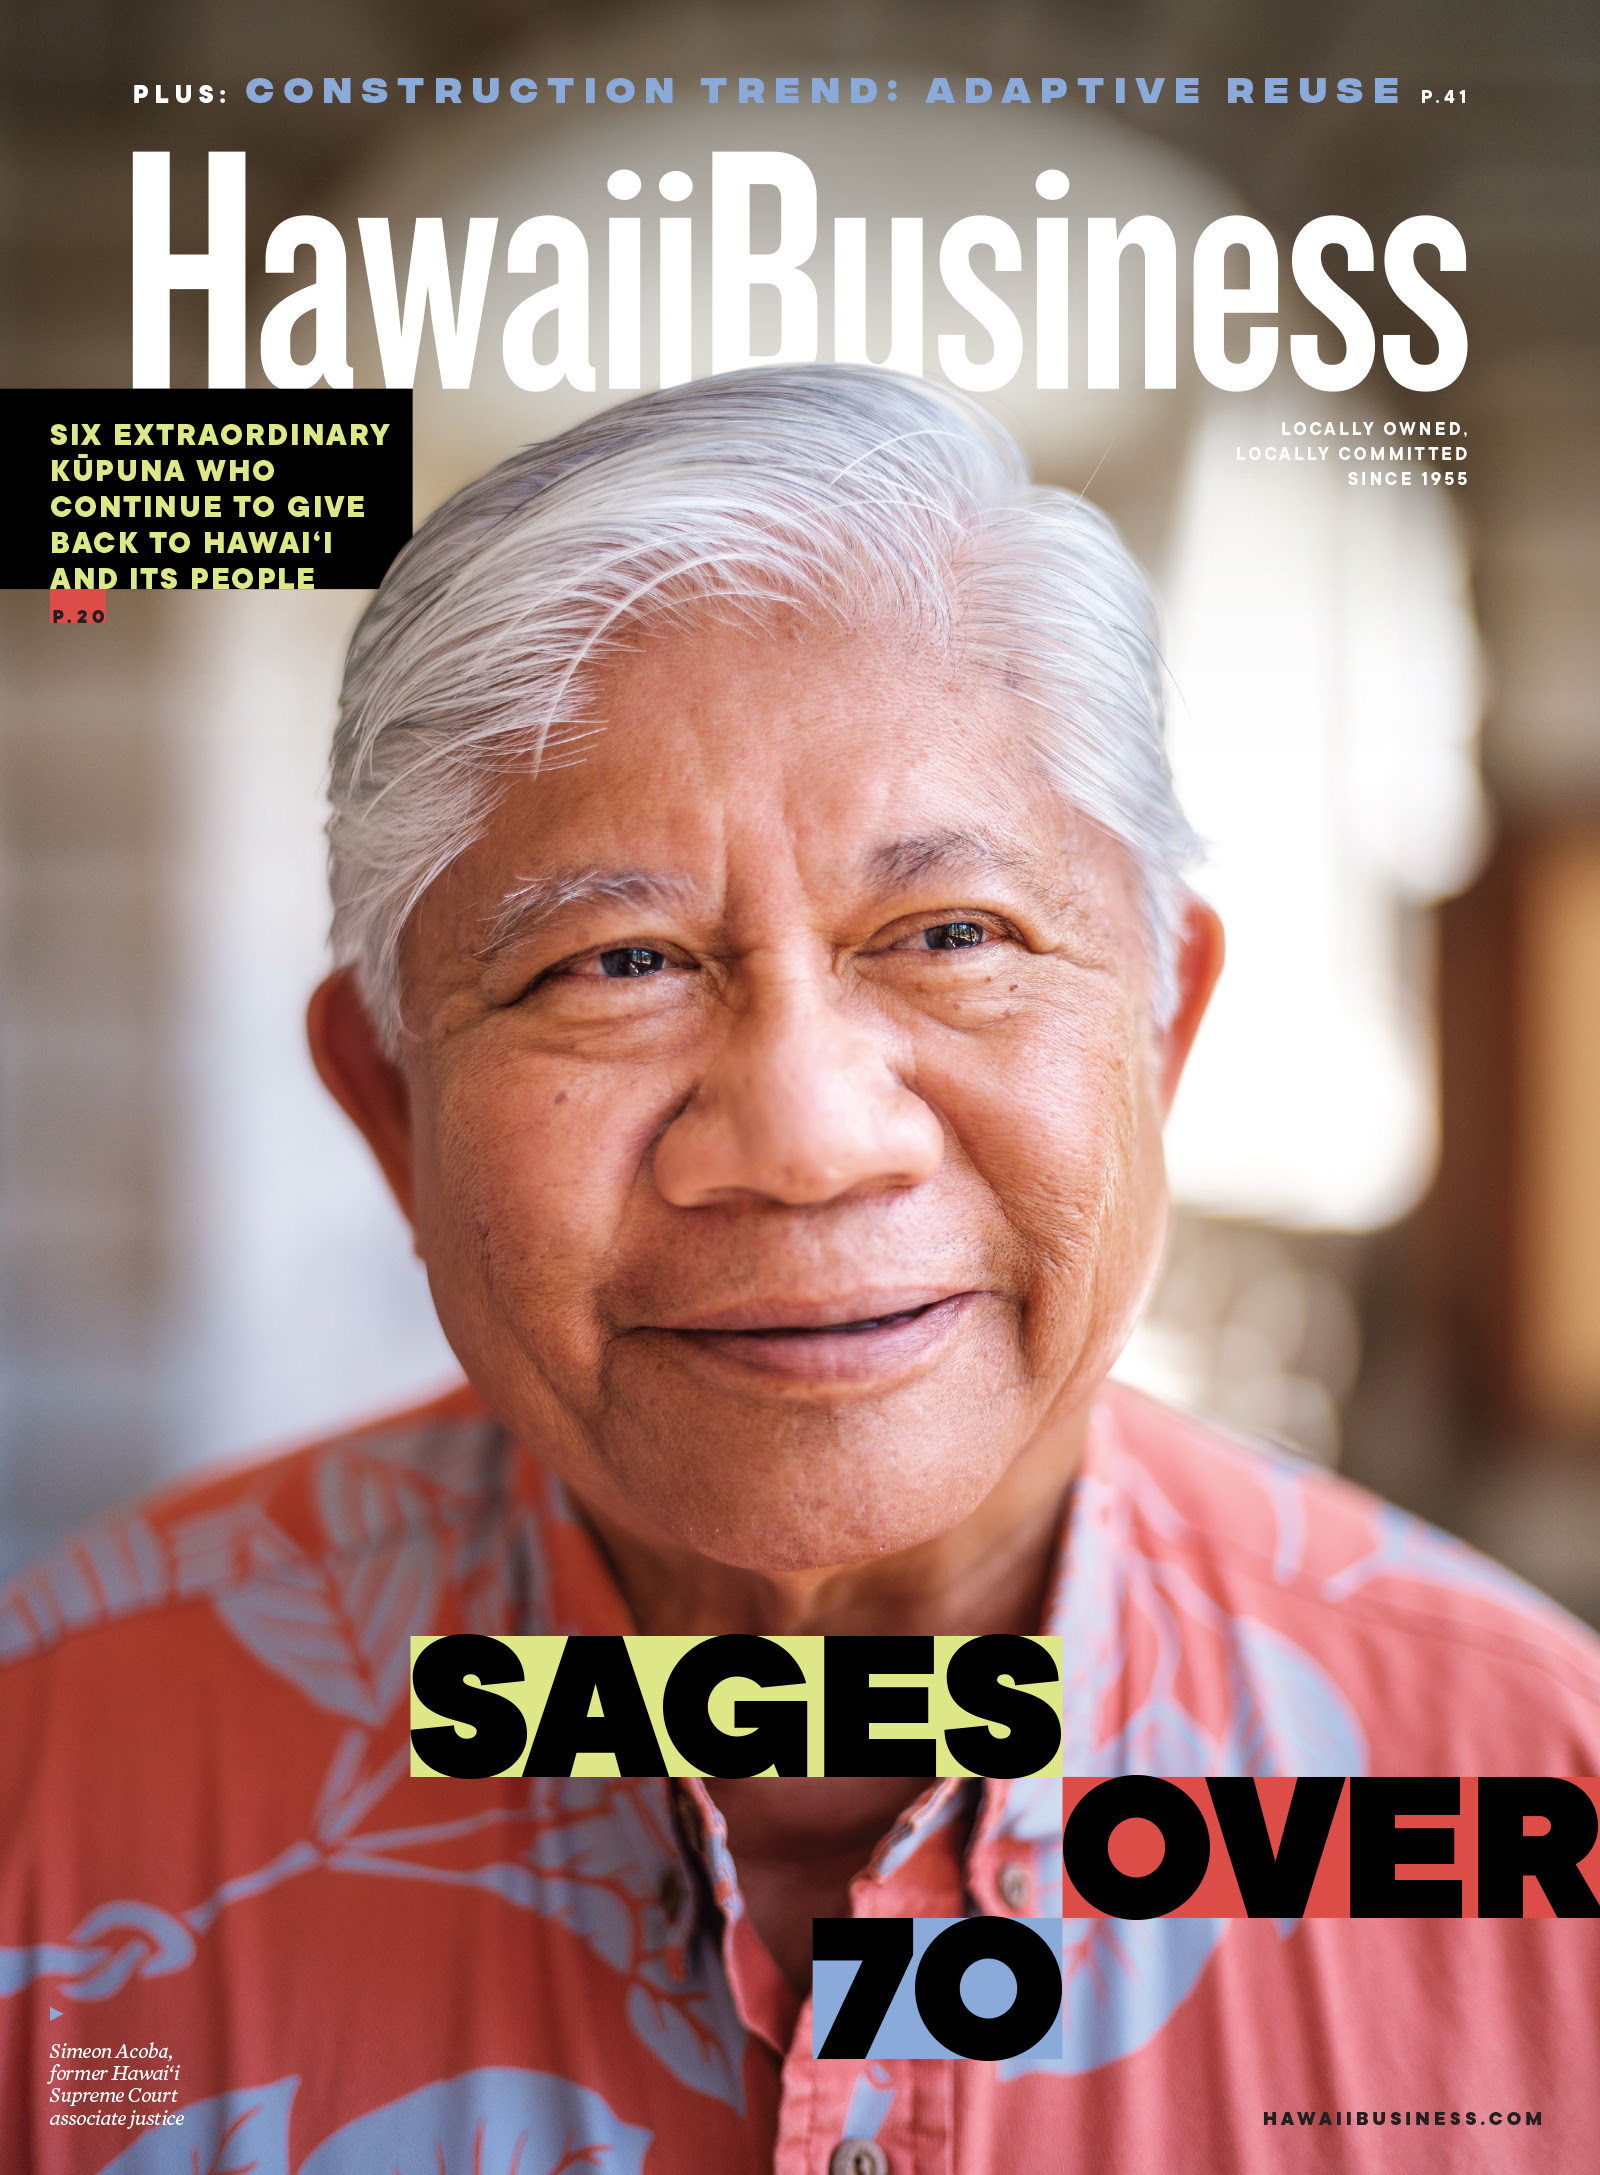 Click here to get your copy of Hawaii Business' September 2021 issue!